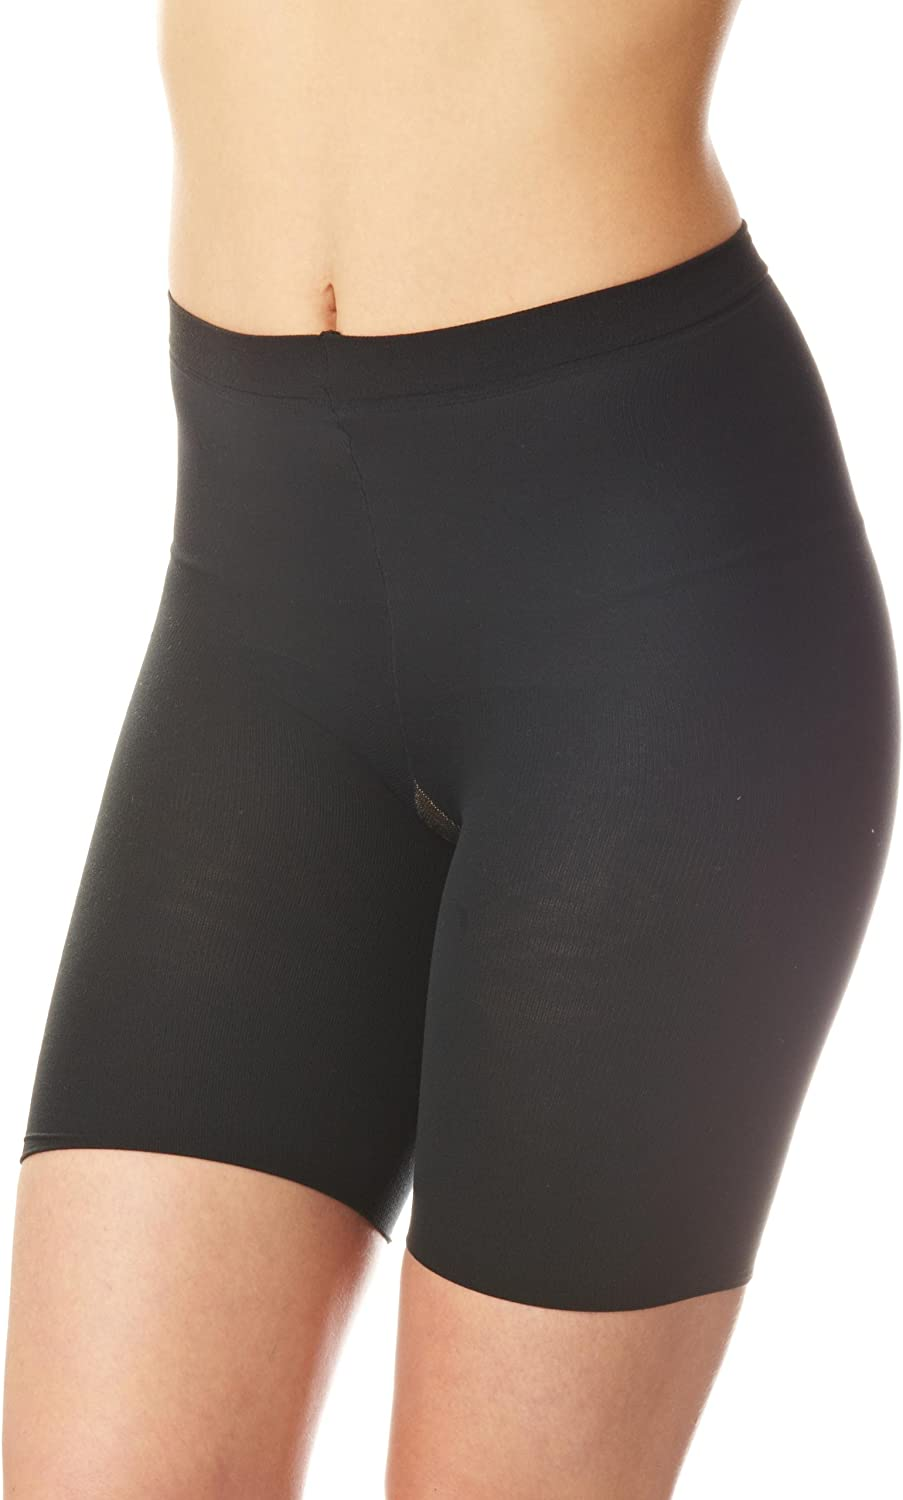 Spanx 004 Power Our shop OFFers the best service Panties with Control Tummy security